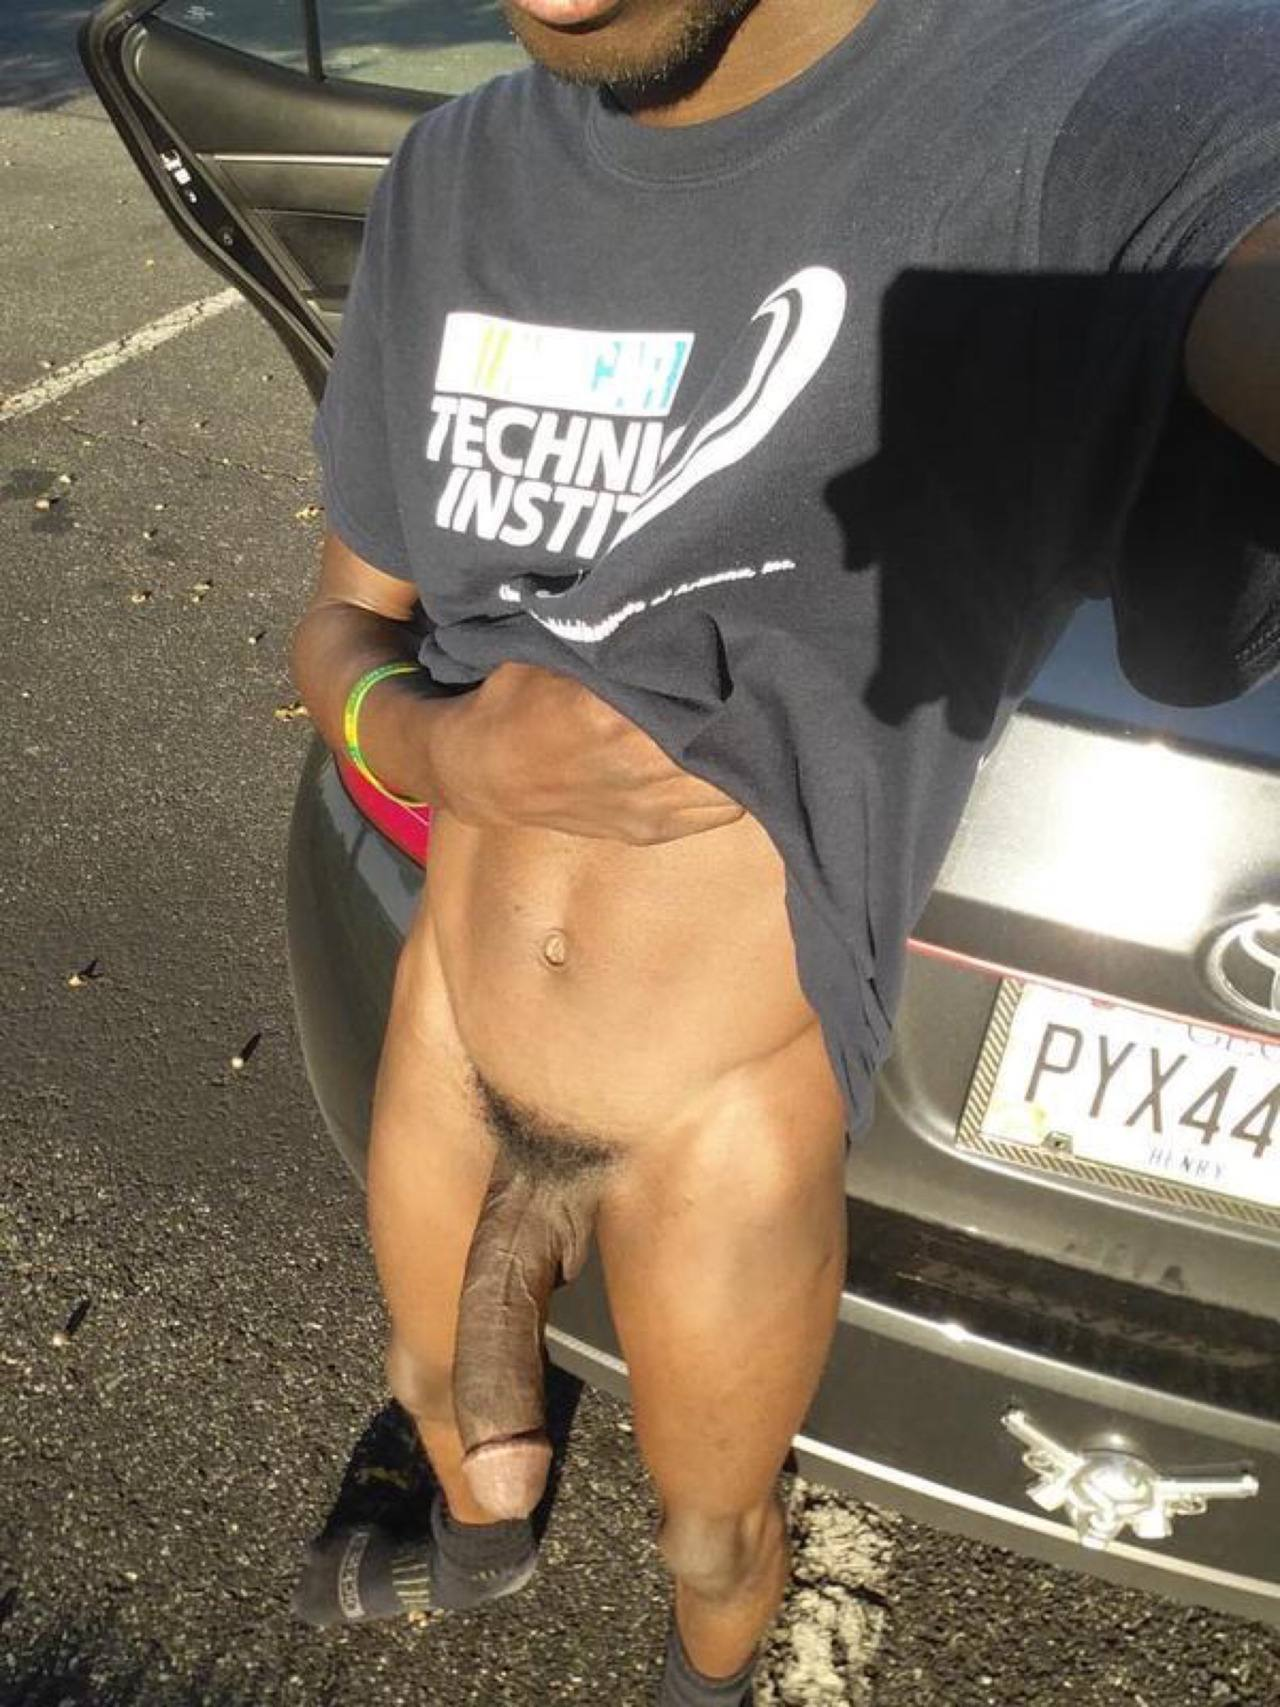 April blossom interracial